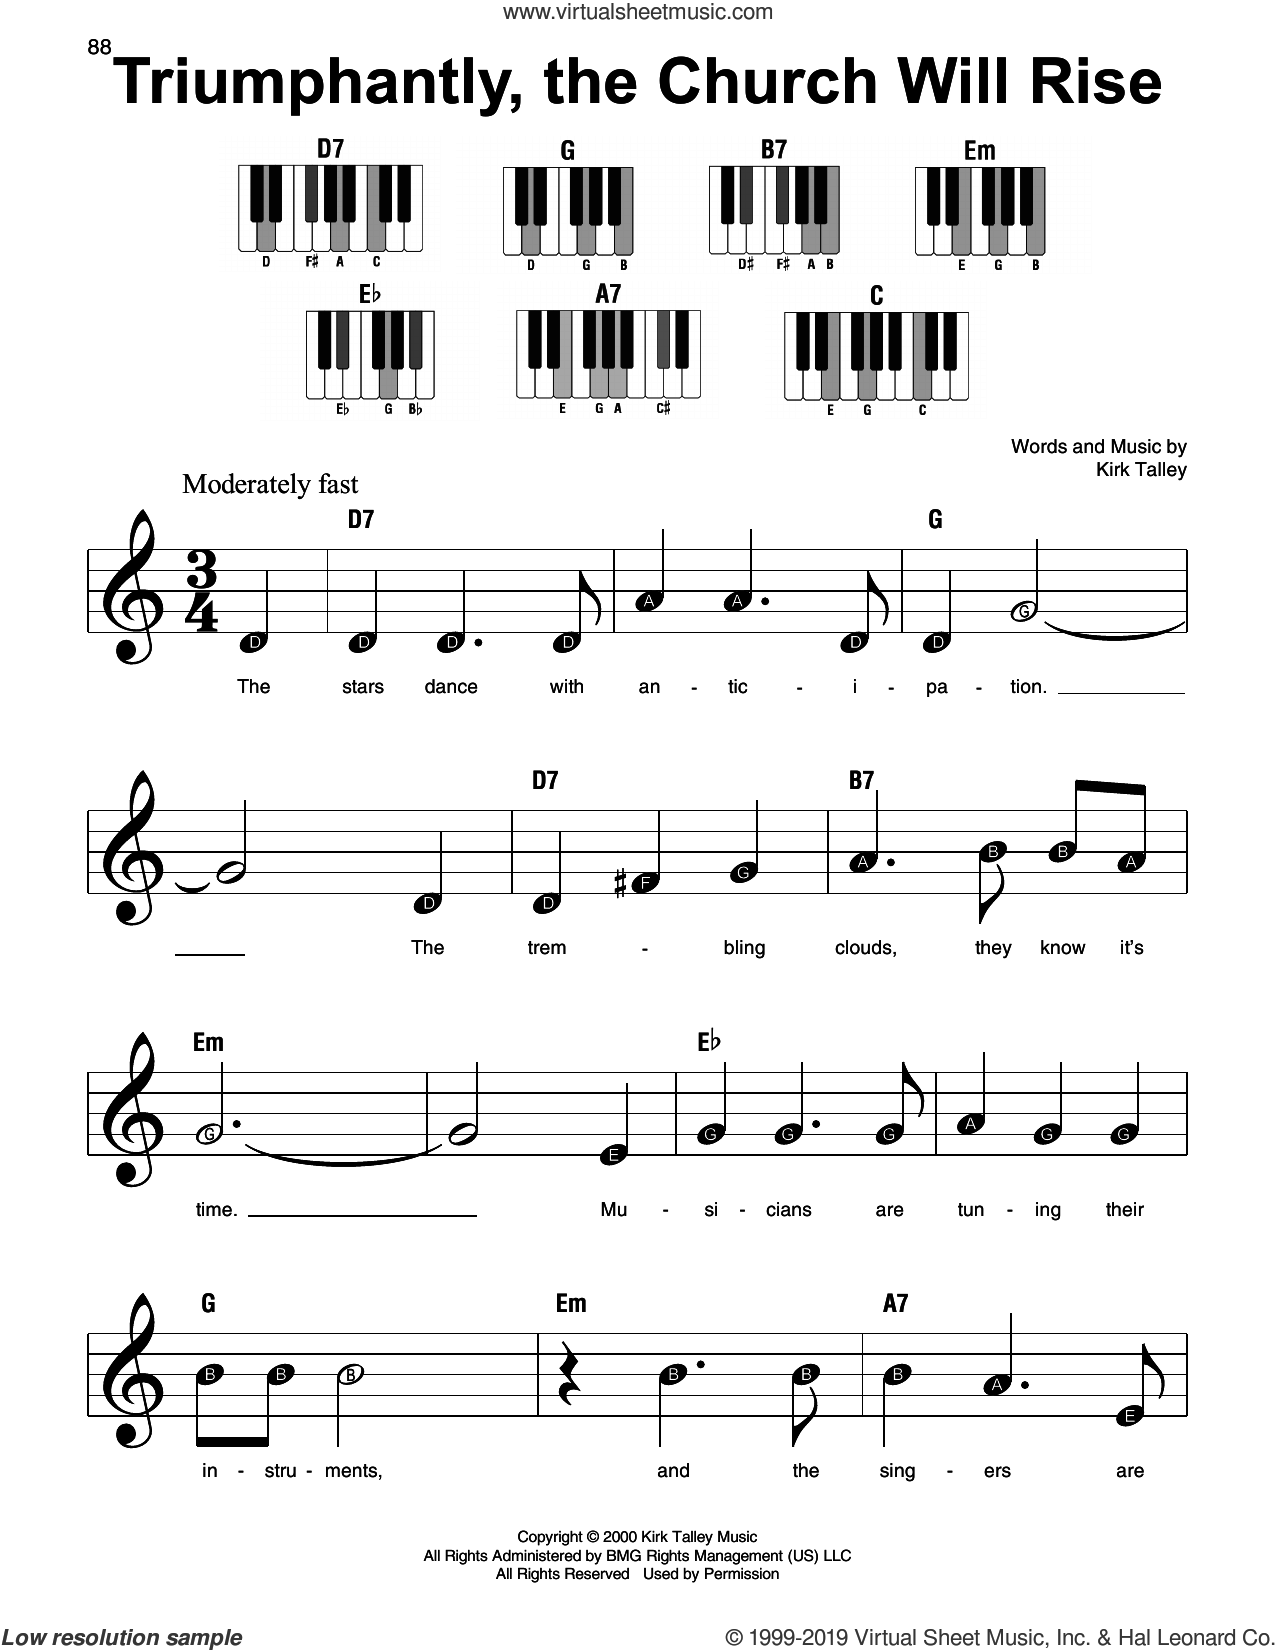 Triumphantly, The Church Will Rise sheet music for piano solo by Kirk Talley, beginner skill level